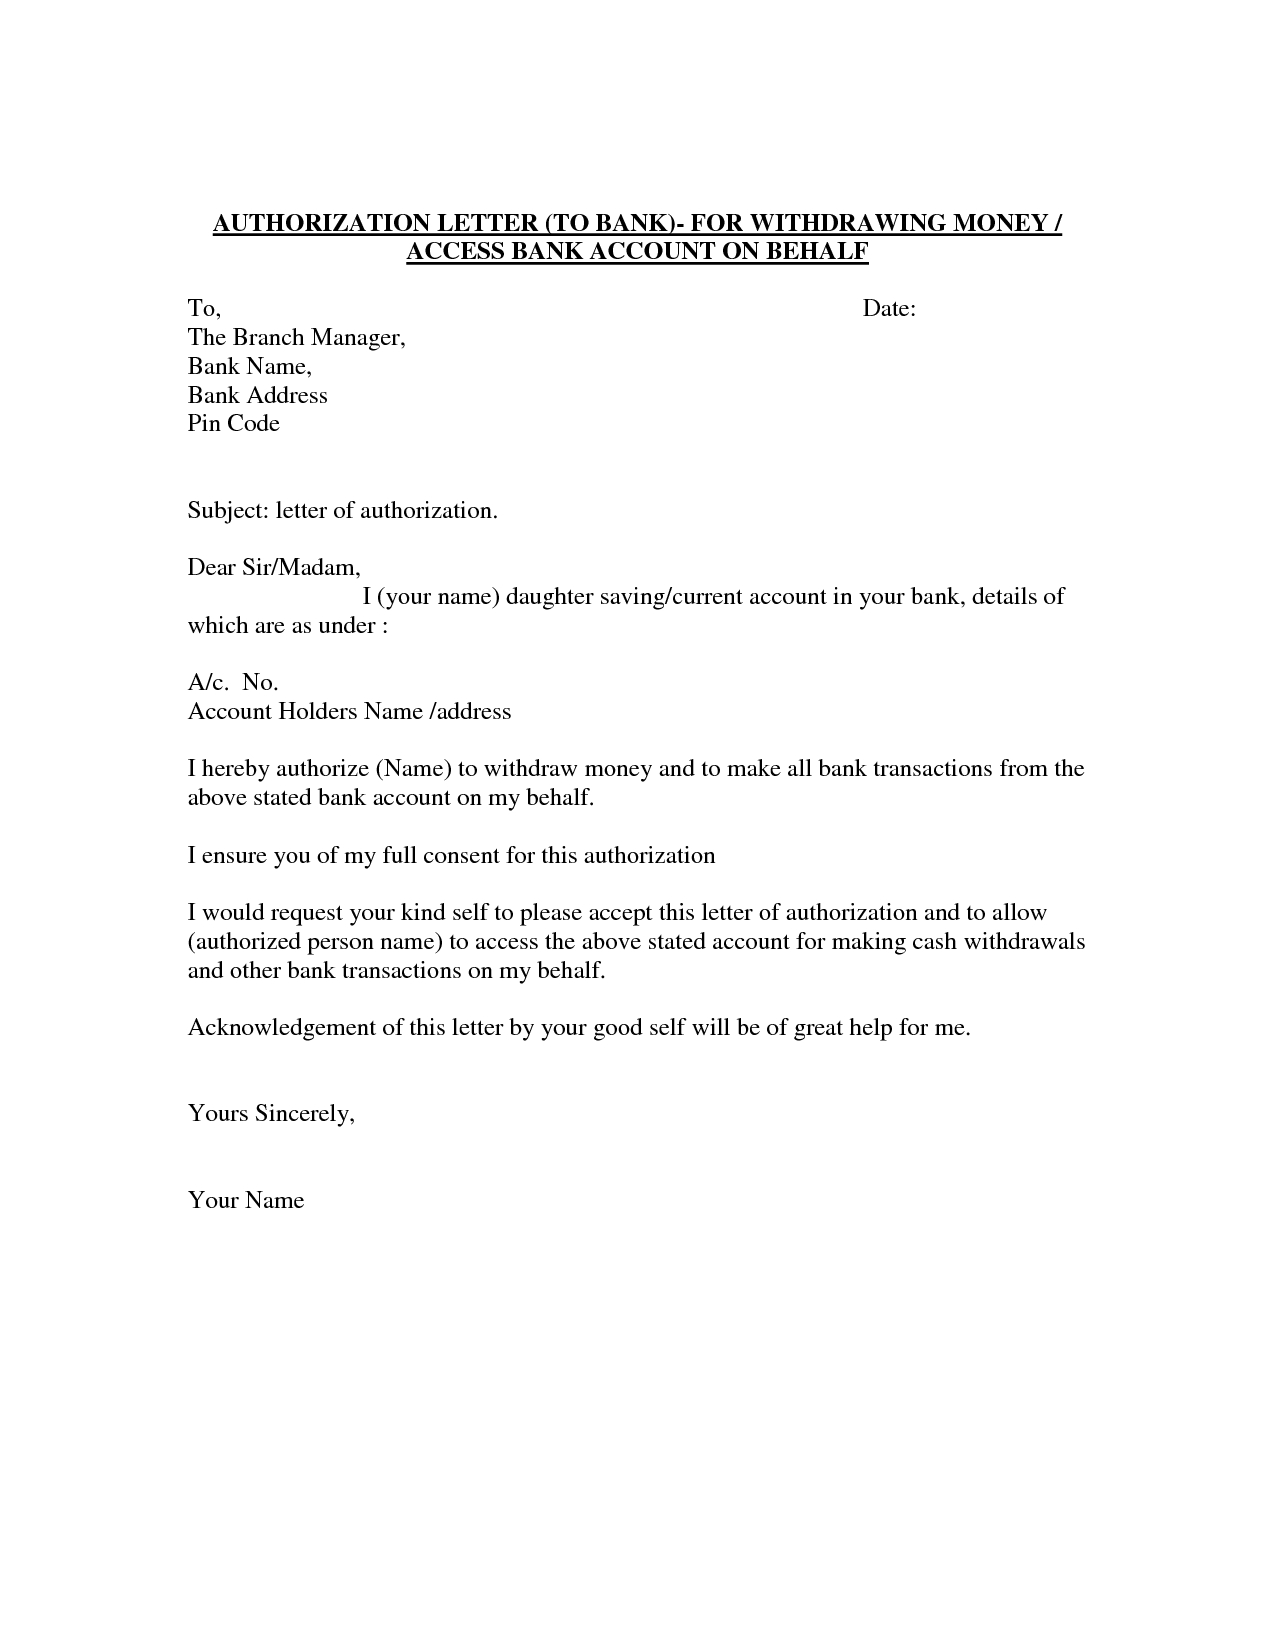 Free Legal Demand Letter Template - Authorization Letter Template Best Car Galleryformal Letter